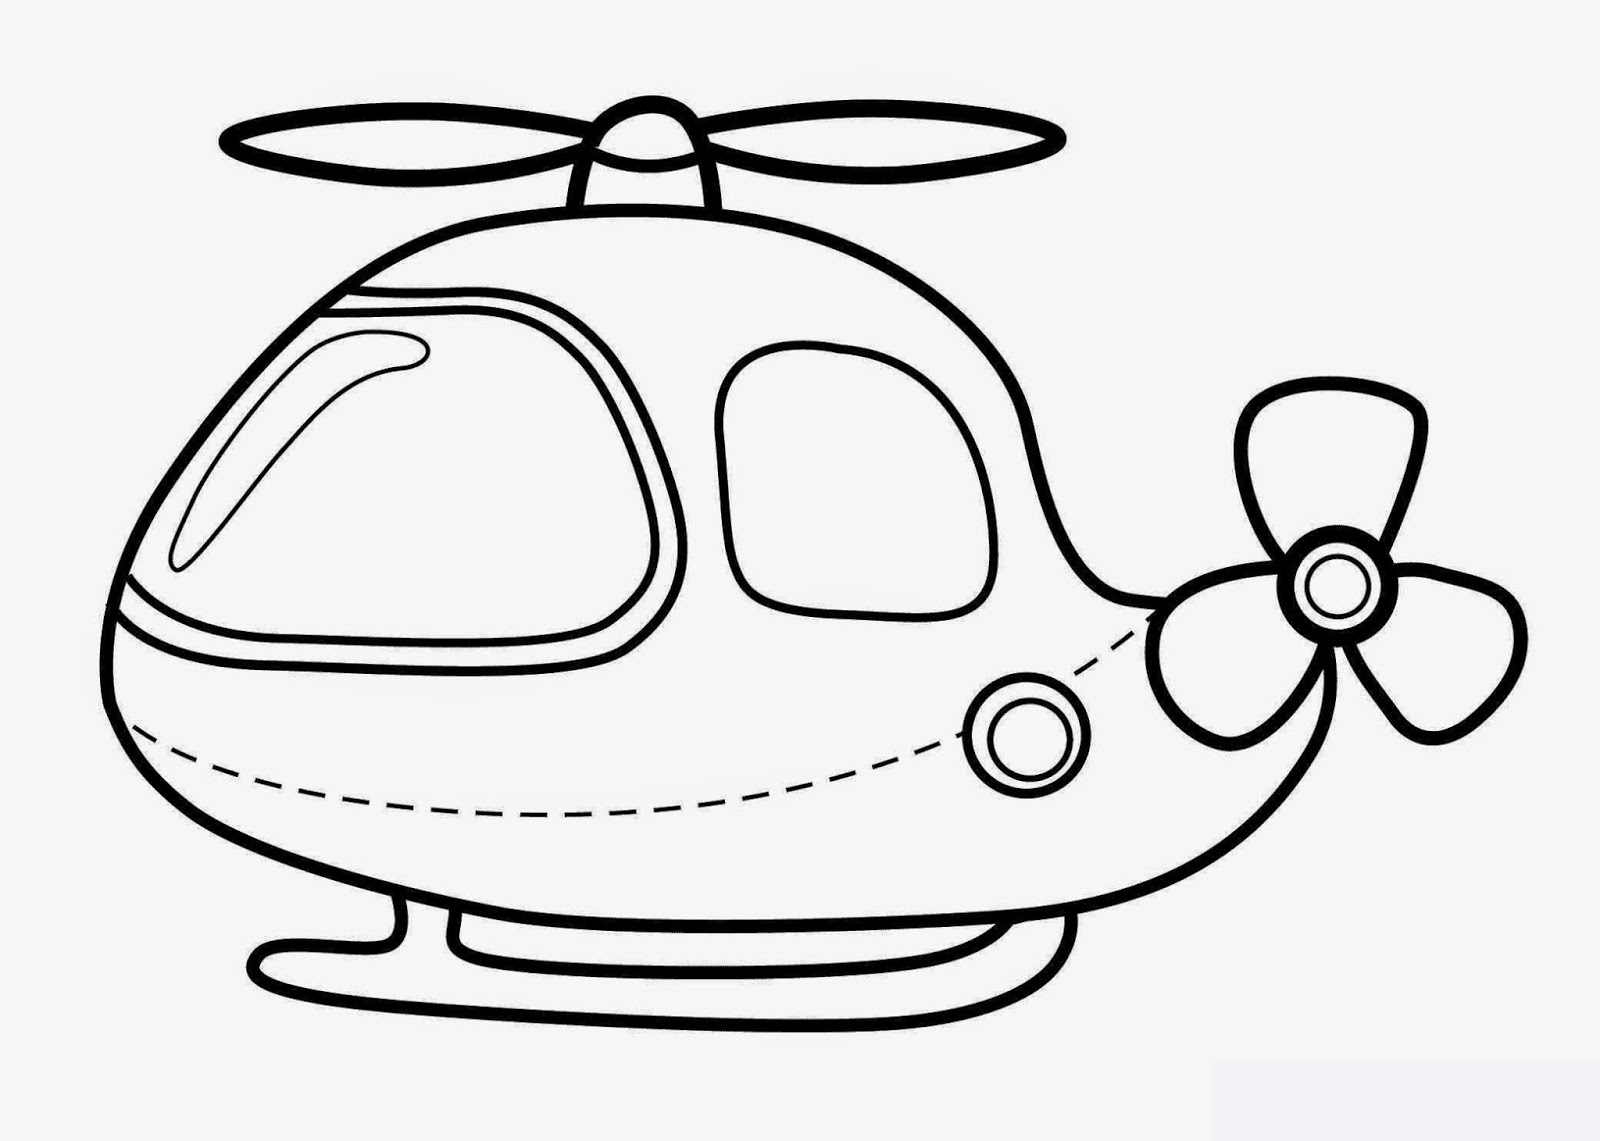 coloring pages for kid - photo#10